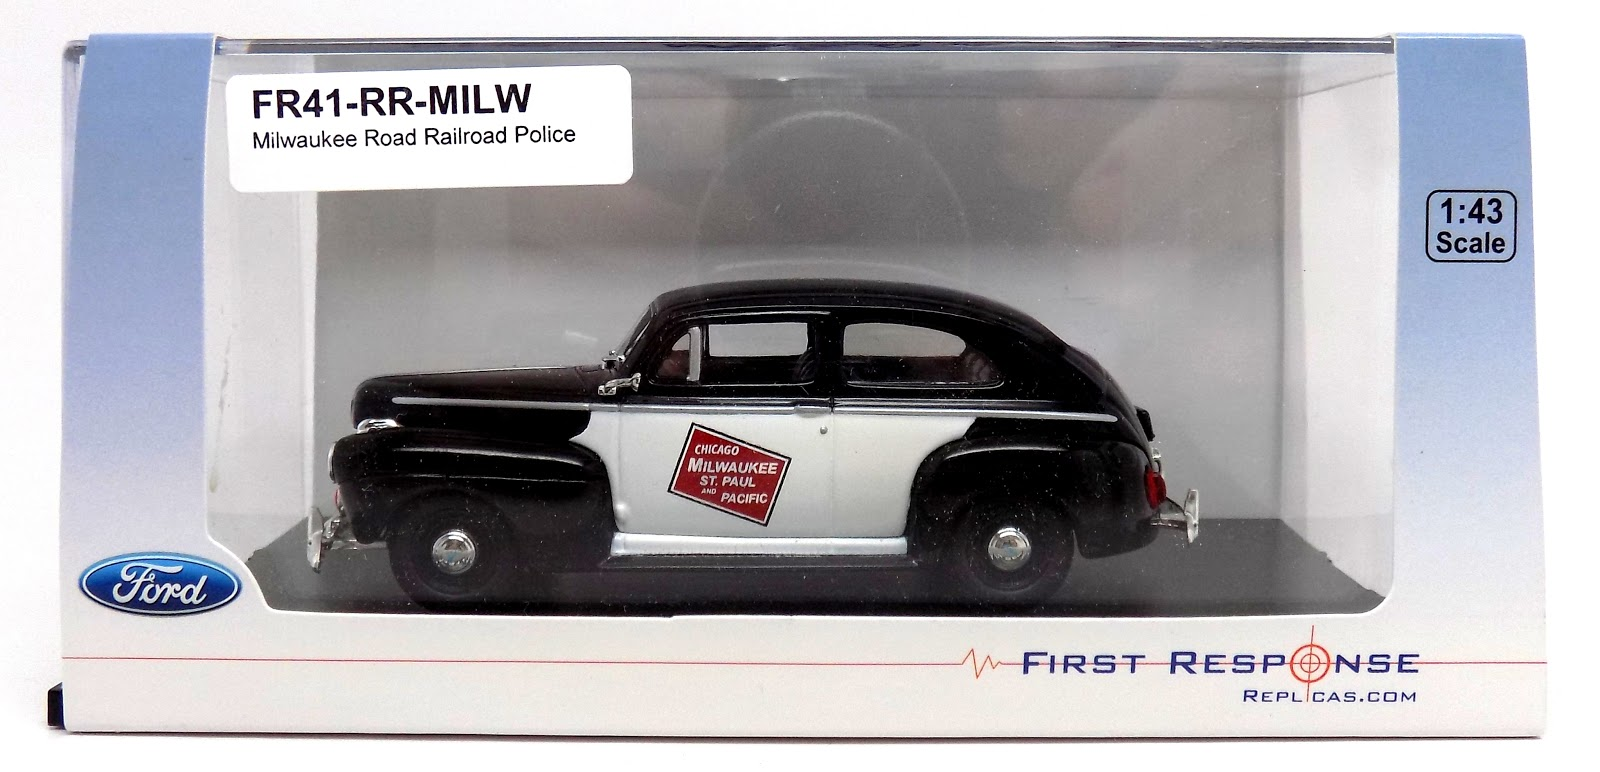 Toys And Stuff First Response Replicas 143 Scale Diecast 1941 Cm Ford Panel Delivery Truck Lol Anyway I Hope You Liked Taking This 25 Tour Of Responses Cmstpp Two Door Sedan Enjoy Opa Fritz Oma Bettina